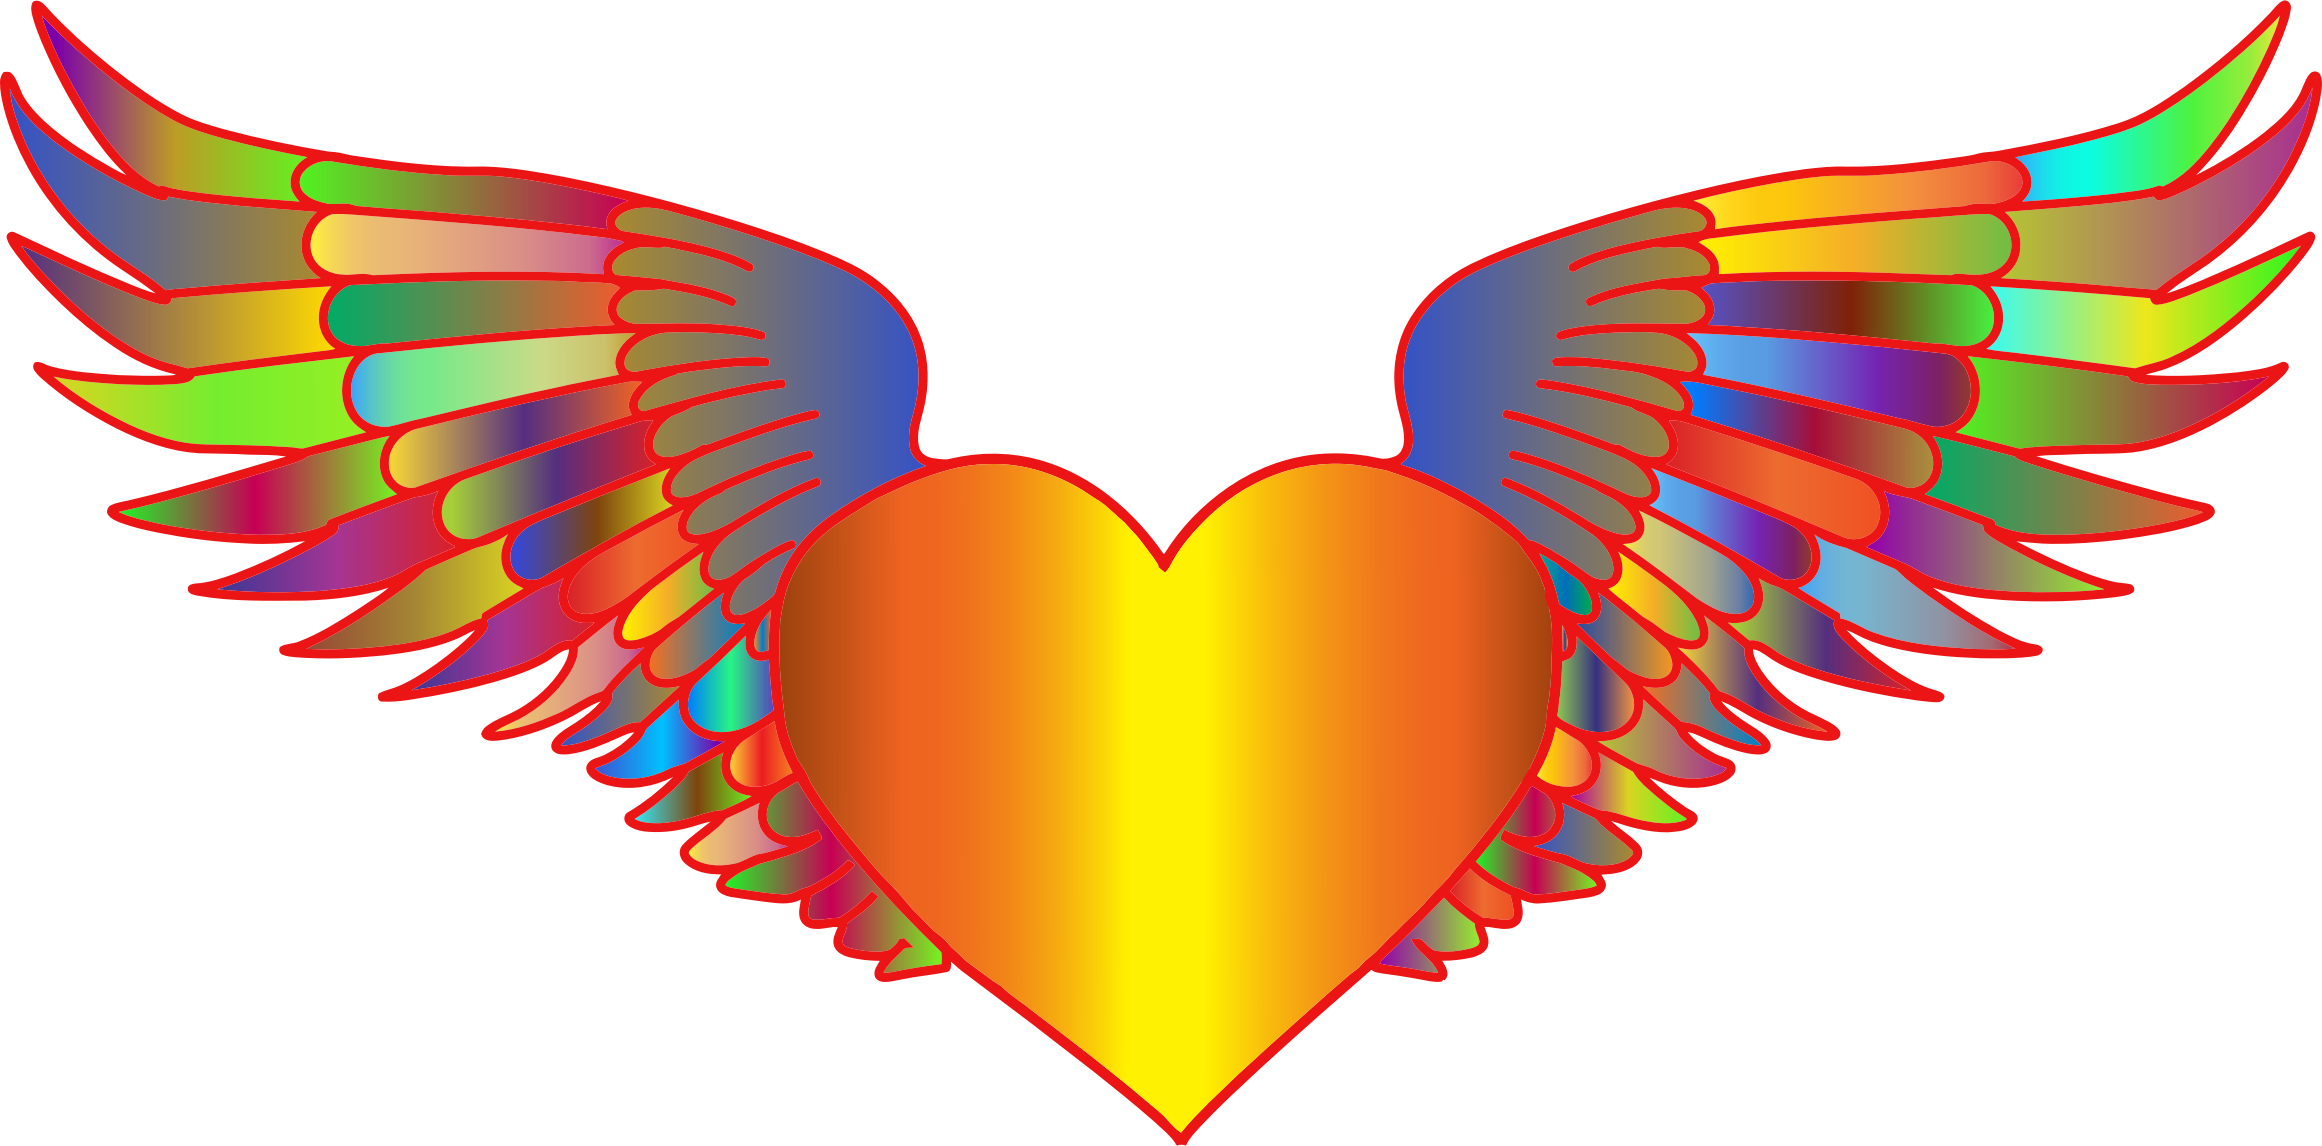 Prismatic Flying Heart by GDJ